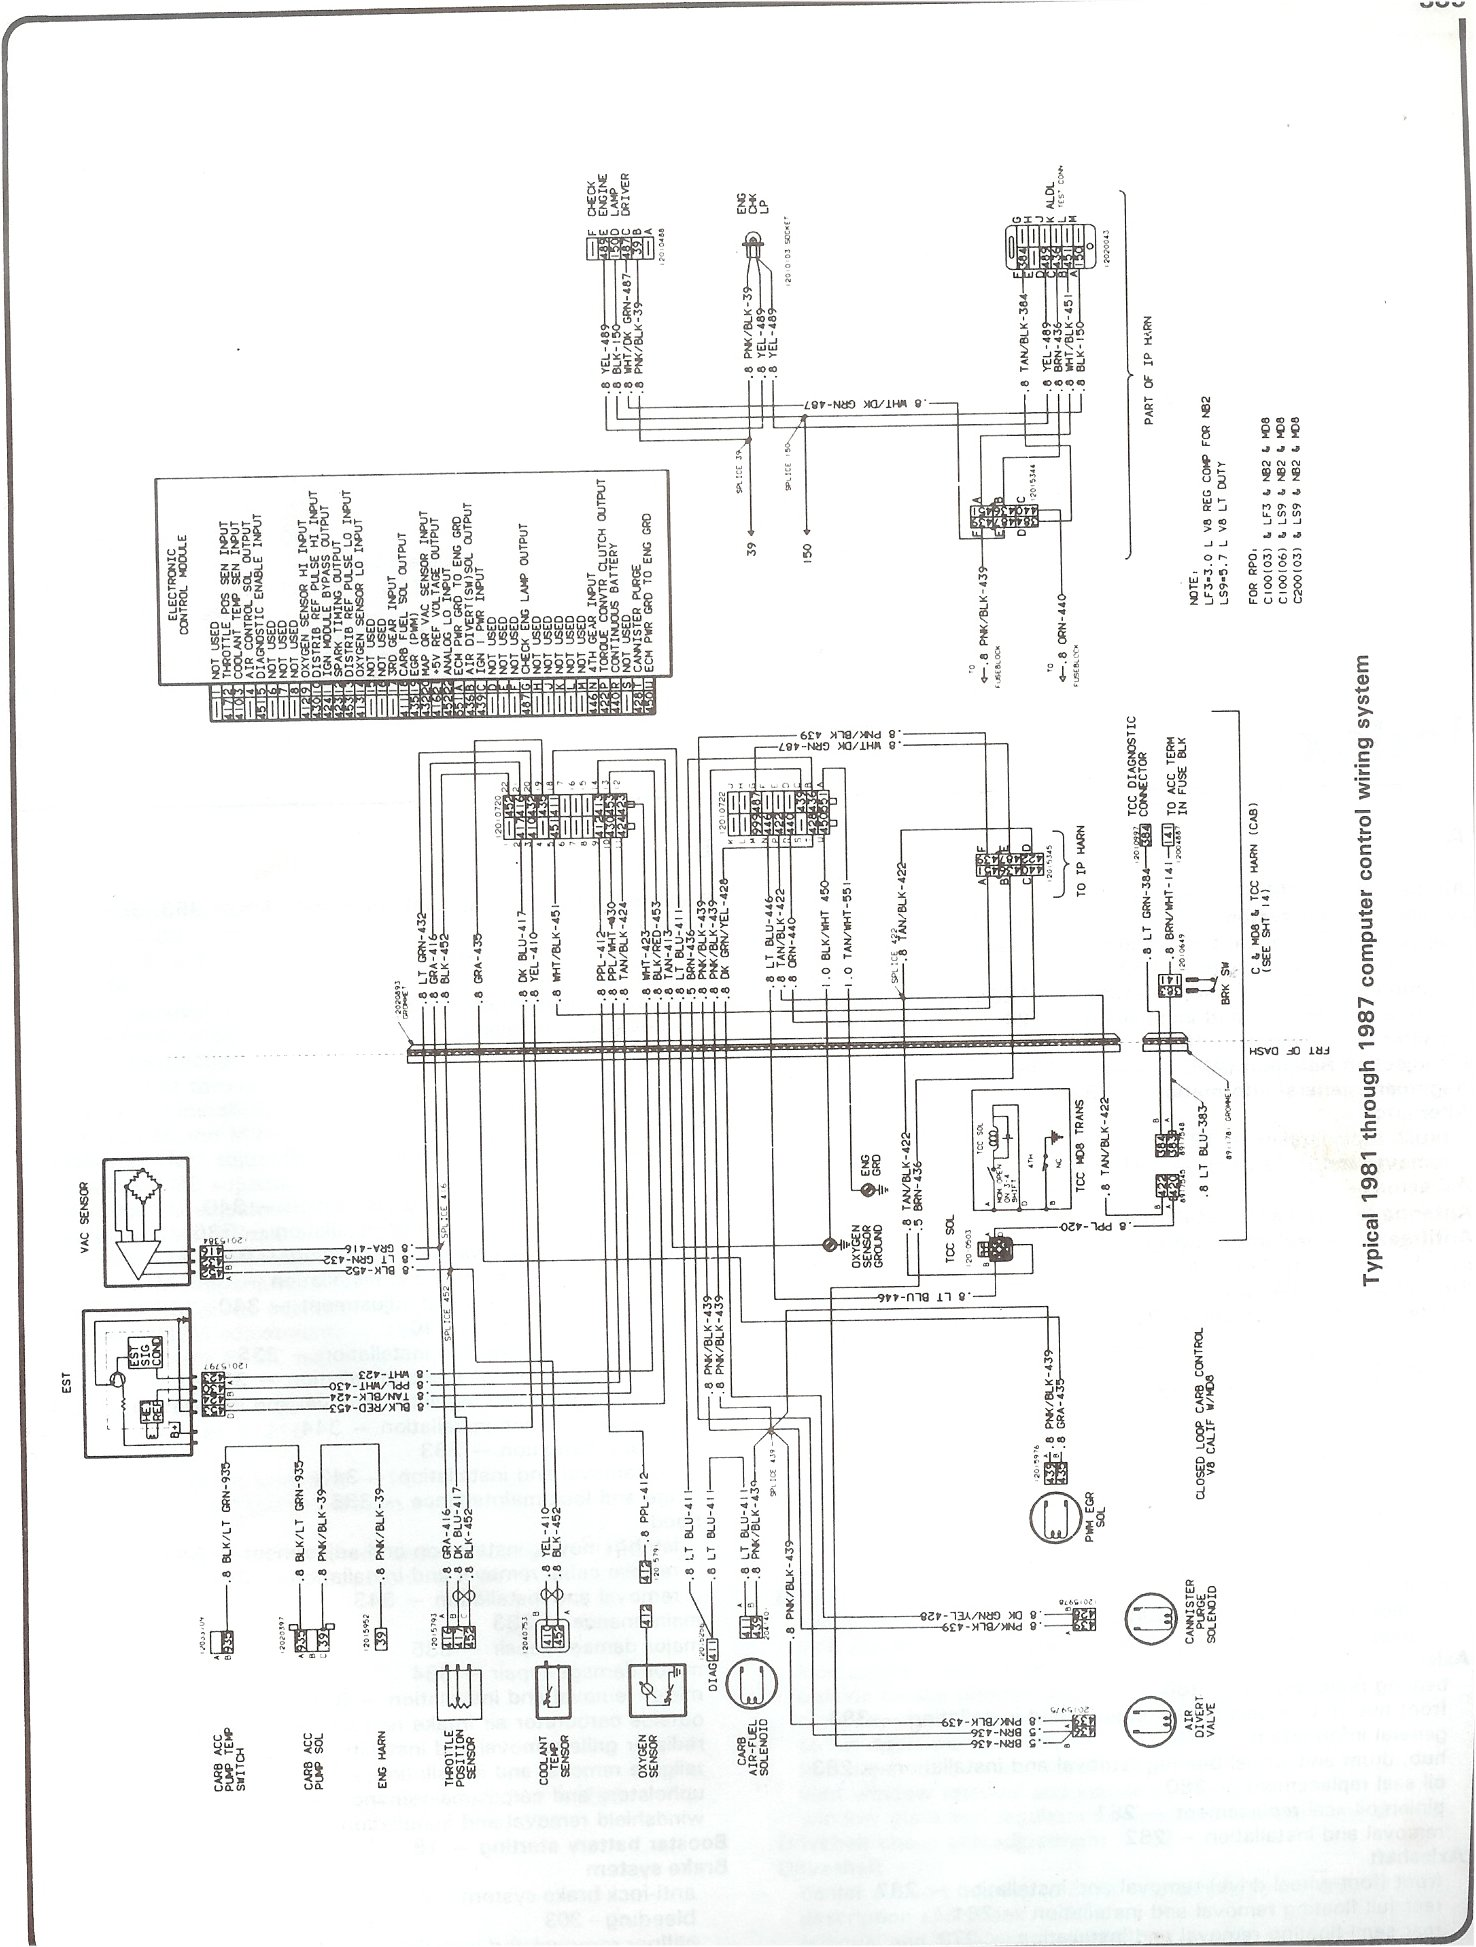 complete 73 87 wiring diagrams rh forum 73 87chevytrucks com Camper Wiring Harness Diagram Camper Wiring Harness Diagram